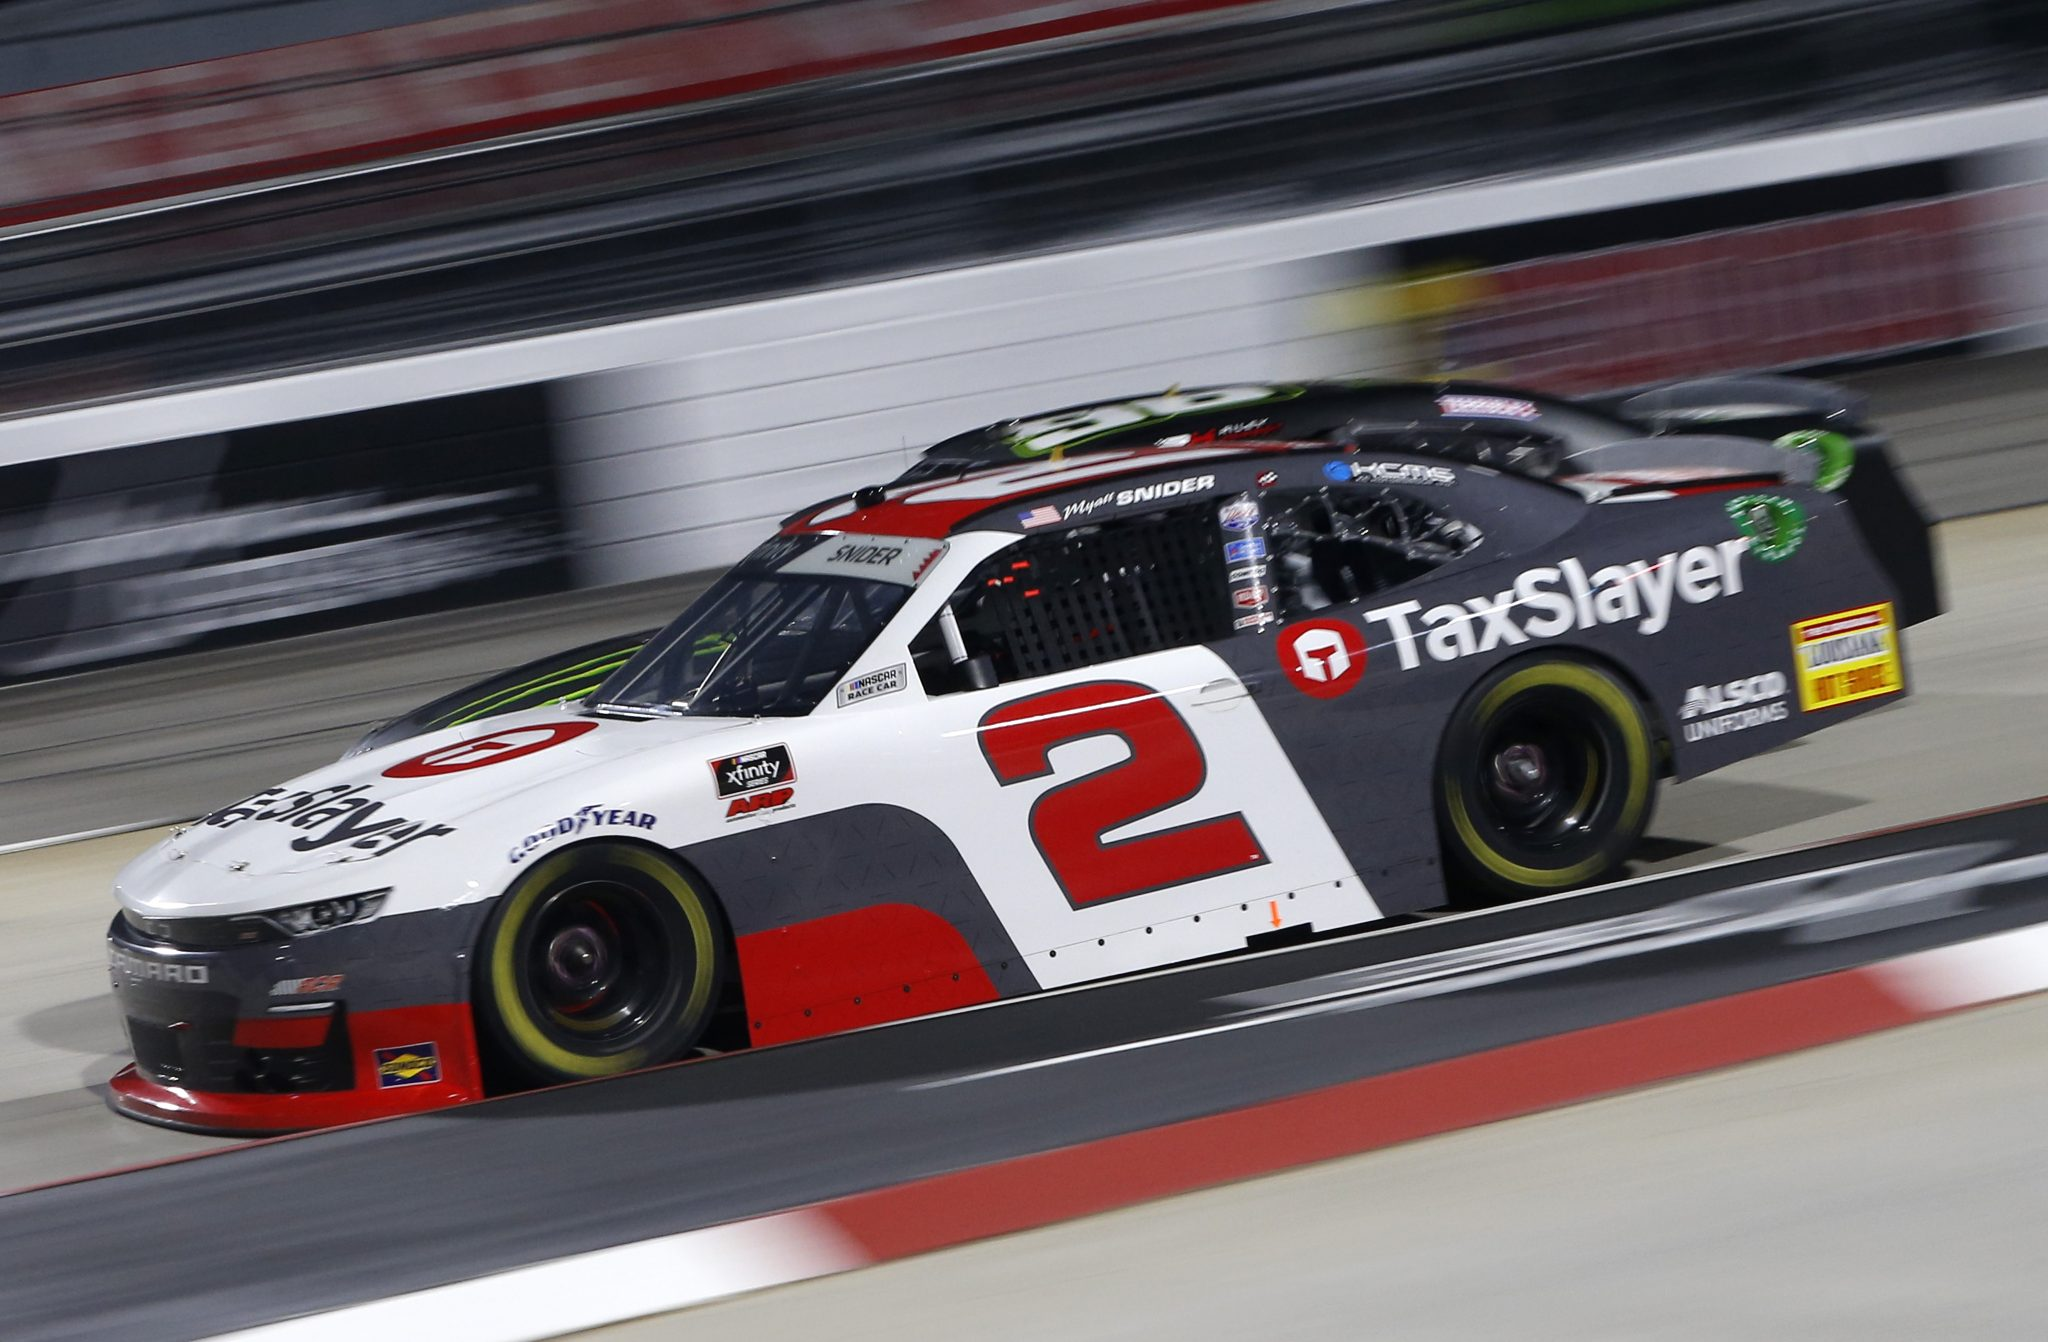 MARTINSVILLE, VIRGINIA - APRIL 09: Myatt Snider, driver of the #2 TaxSlayer Chevrolet, drives during the NASCAR Xfinity Series Cook Out 250 at Martinsville Speedway on April 09, 2021 in Martinsville, Virginia. (Photo by Brian Lawdermilk/Getty Images) | Getty Images